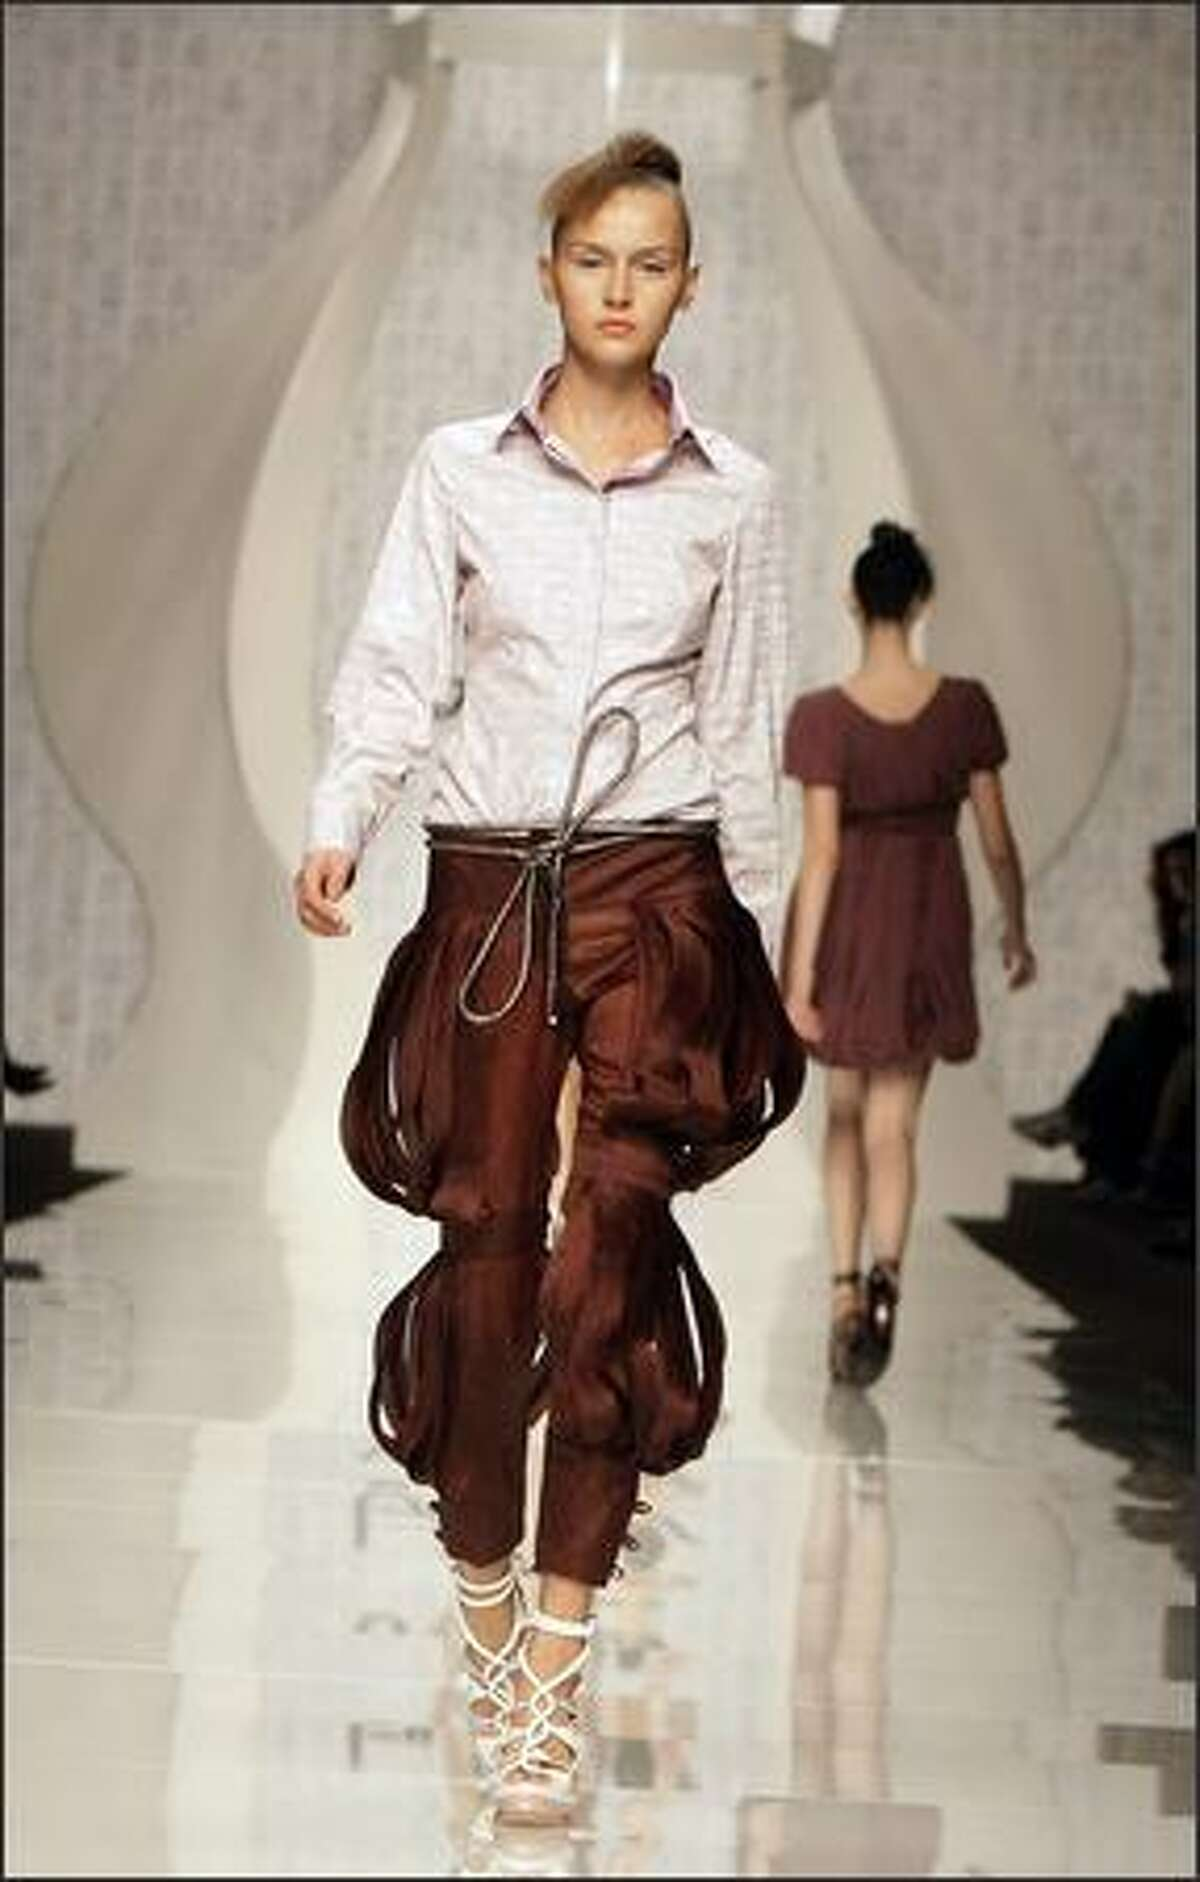 A model presents a creation by Byblos.